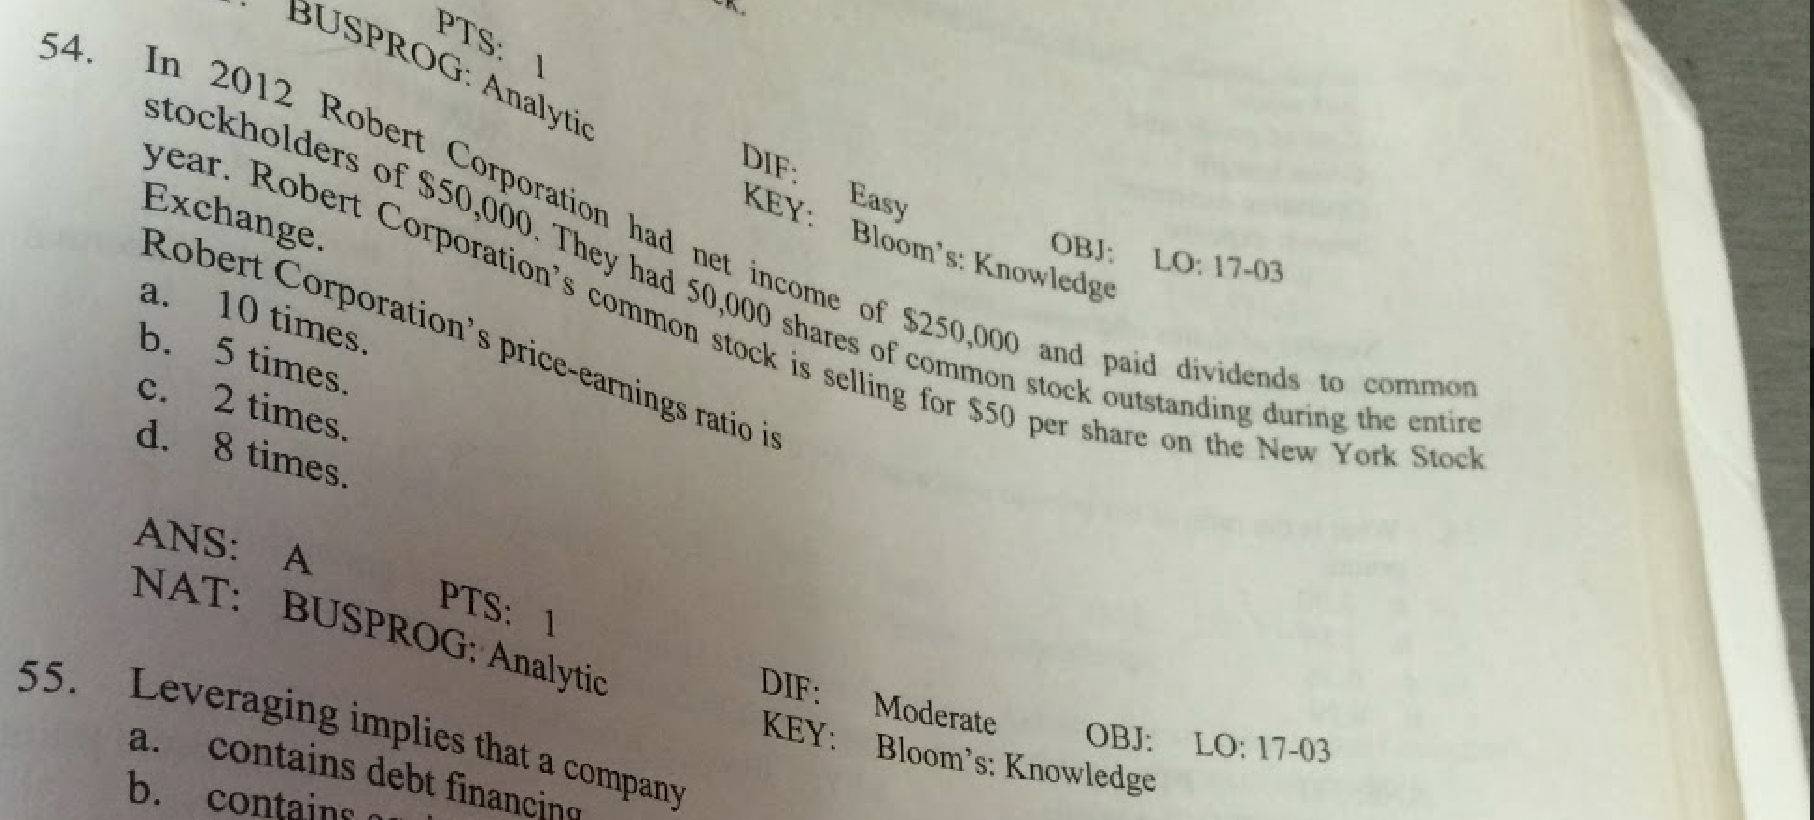 PTS: 1 BUSPROG: Analytic DIF: Easy KEY: Bloom's: Knowledge In 2012 Robert Corporation had net income of $250,000 and paid dividends to common year. Robert Corporation's common stock is selling for $50 per share on the New York Stock OBJ: LO: 17-03 54. stockholders of $50,000. They had S0,000 shares of common stock outstanding during the entire Exchange. Robert Corporation's price-earnings ratio is 10 times. b. 5 times. 2 times. a. c. d. 8 times. ANS: A NAT: BUSPROG: Analytic LO: 17-03 PTS: 1 OBJ: DIF: Moderate KEY: Bloom's: Knowledge 55. Leveraging implies that a company contains debt financing a. b. contains